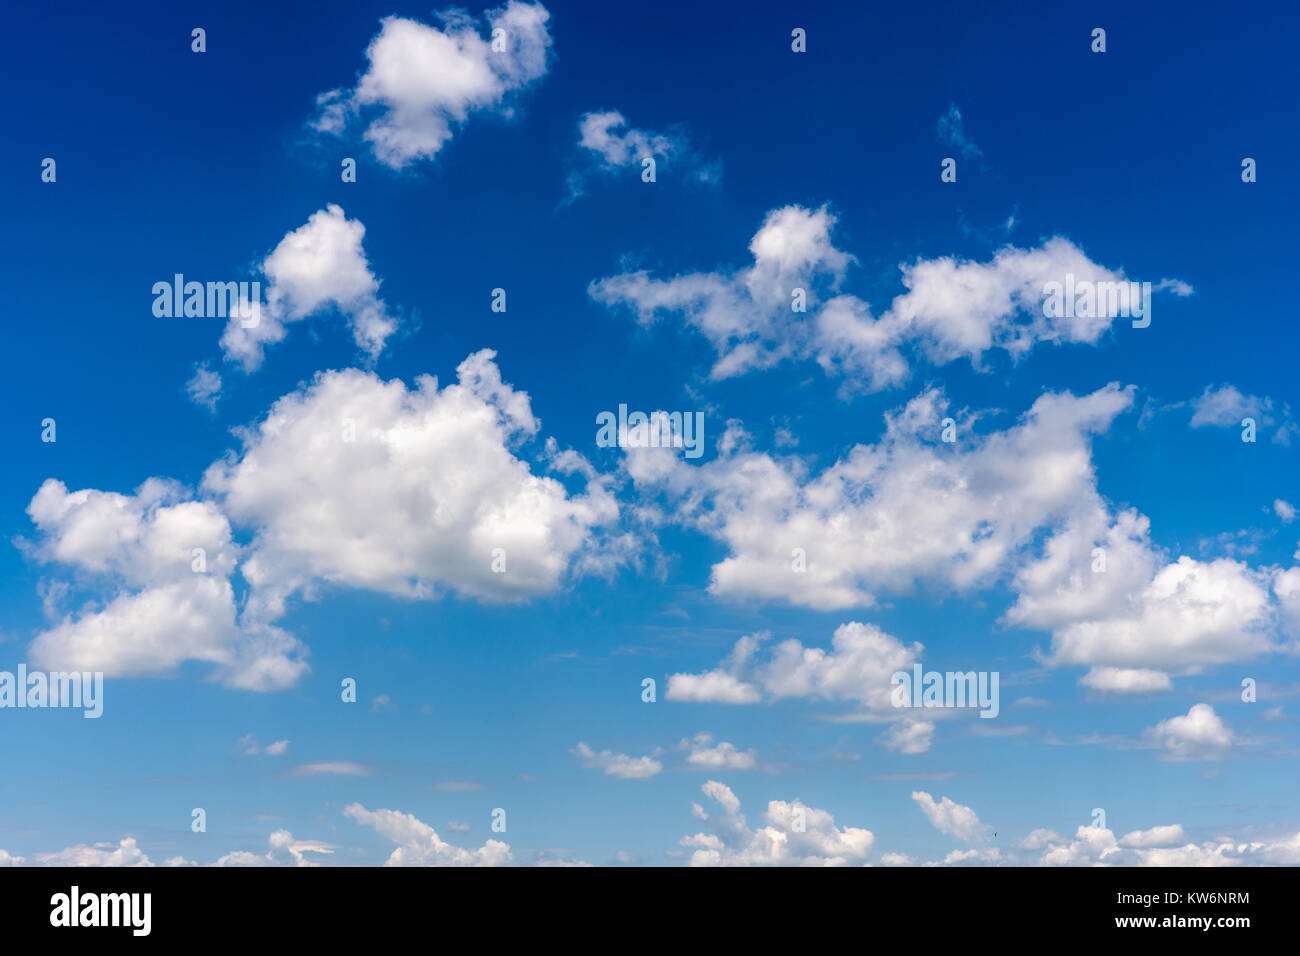 Weather condition with fluffy clouds in the blue sky - Stock Image